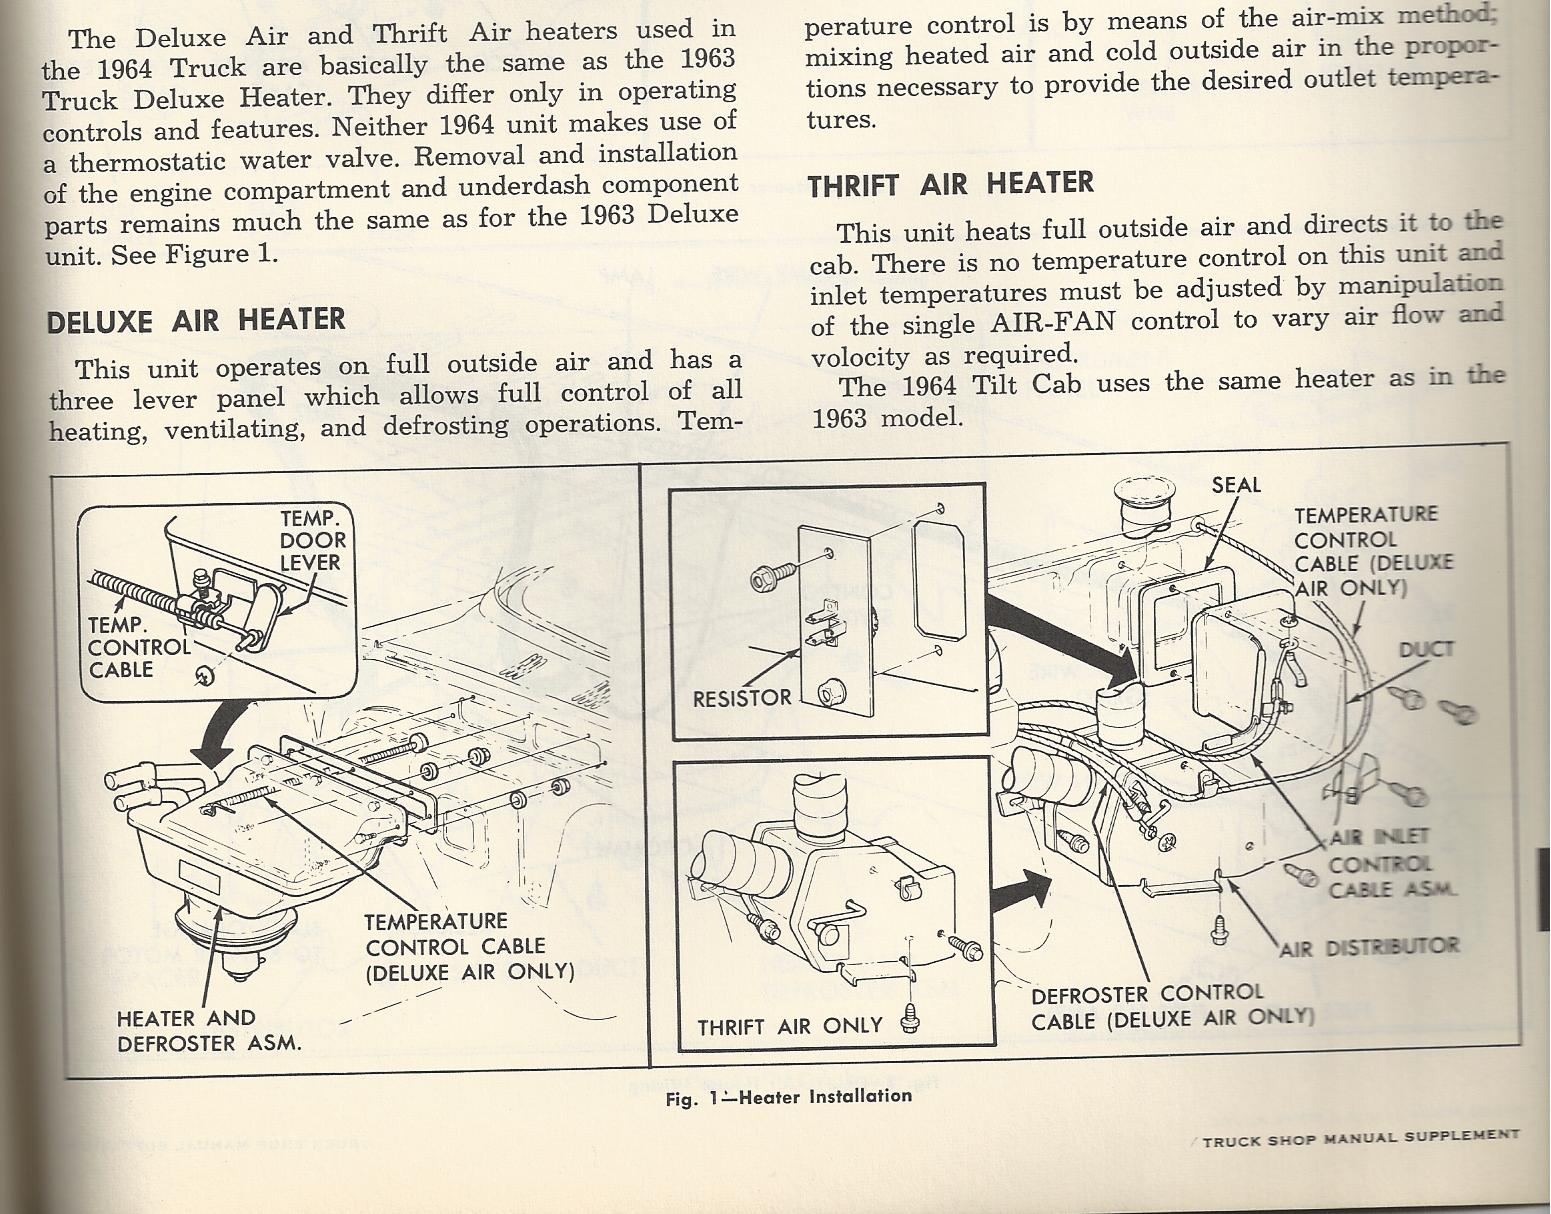 Wiring Diagram For 1966 Chevy Truck - Wiring Diagram